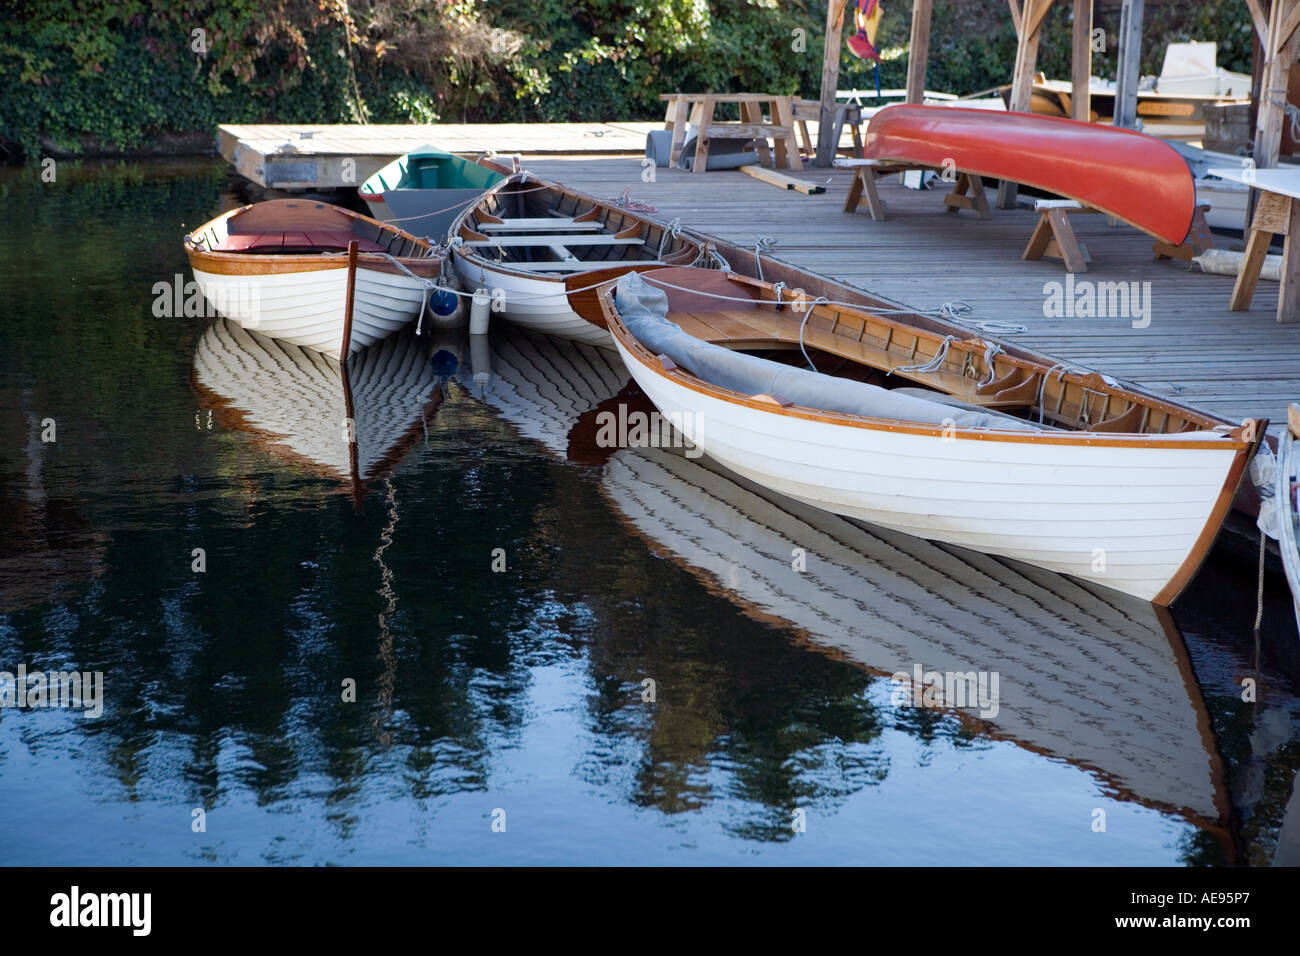 Antique wooden boats tied at pier - Stock Image